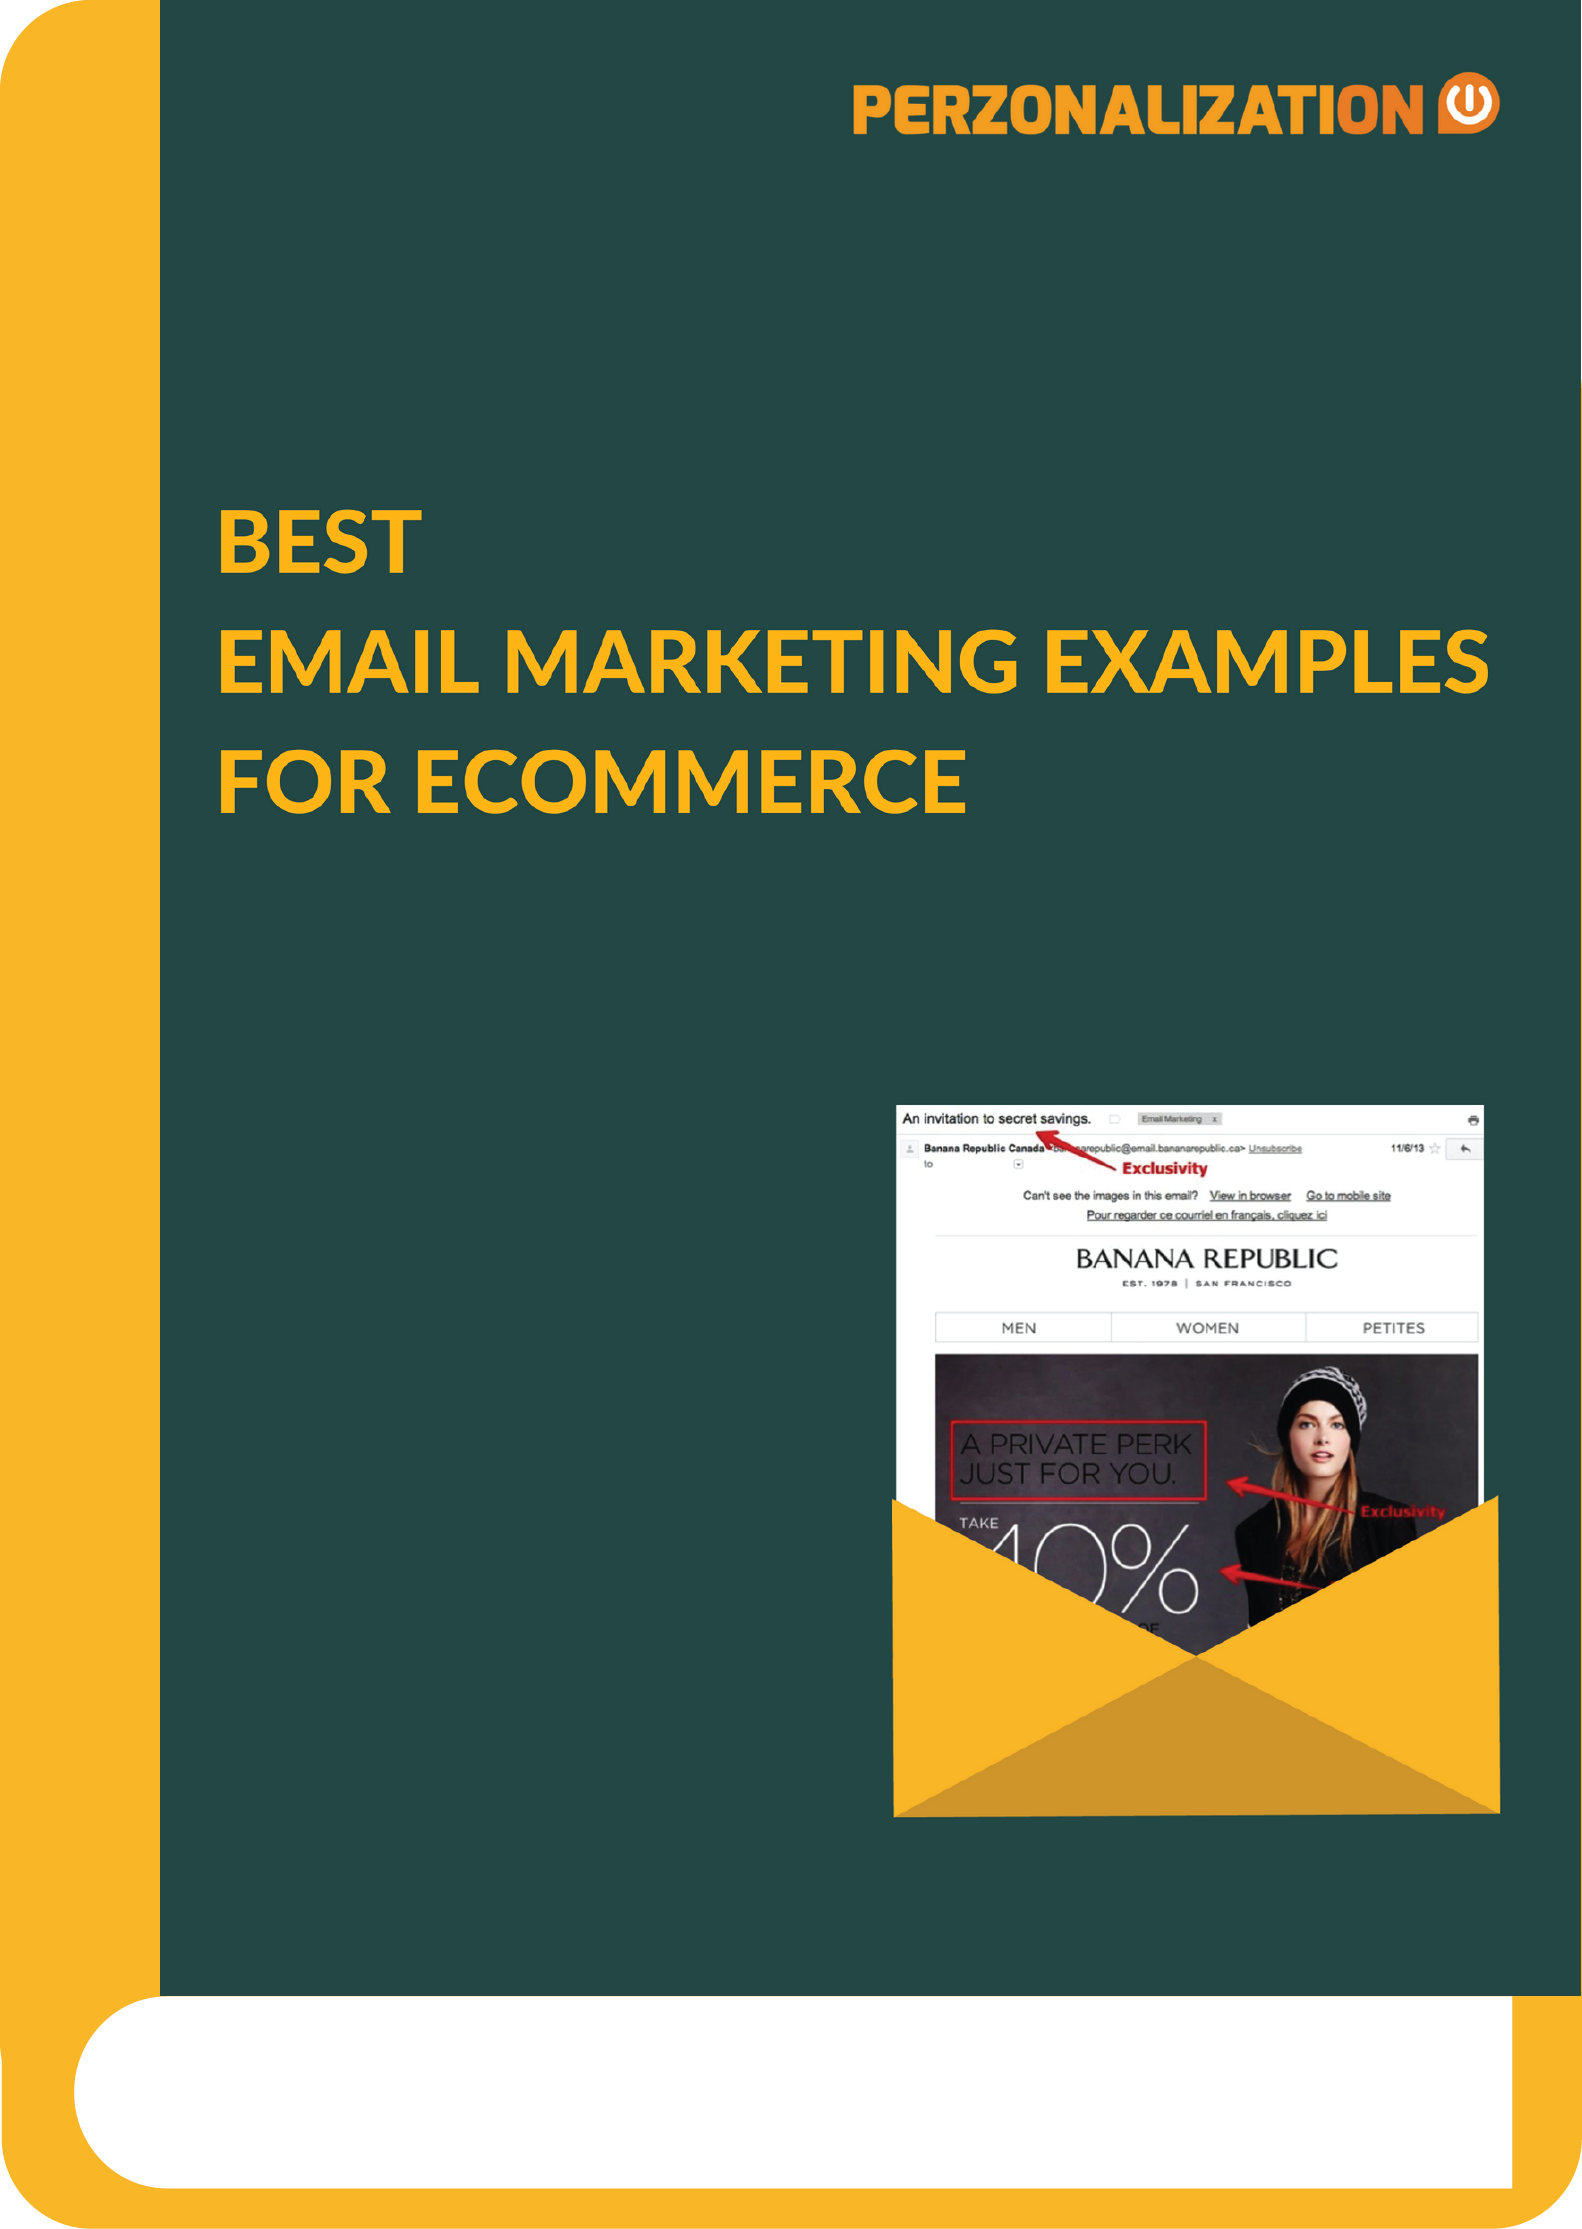 It's not a surprise that best email marketing examples usually come from the eCommerce websites as email is a great retention tool for online retailers.